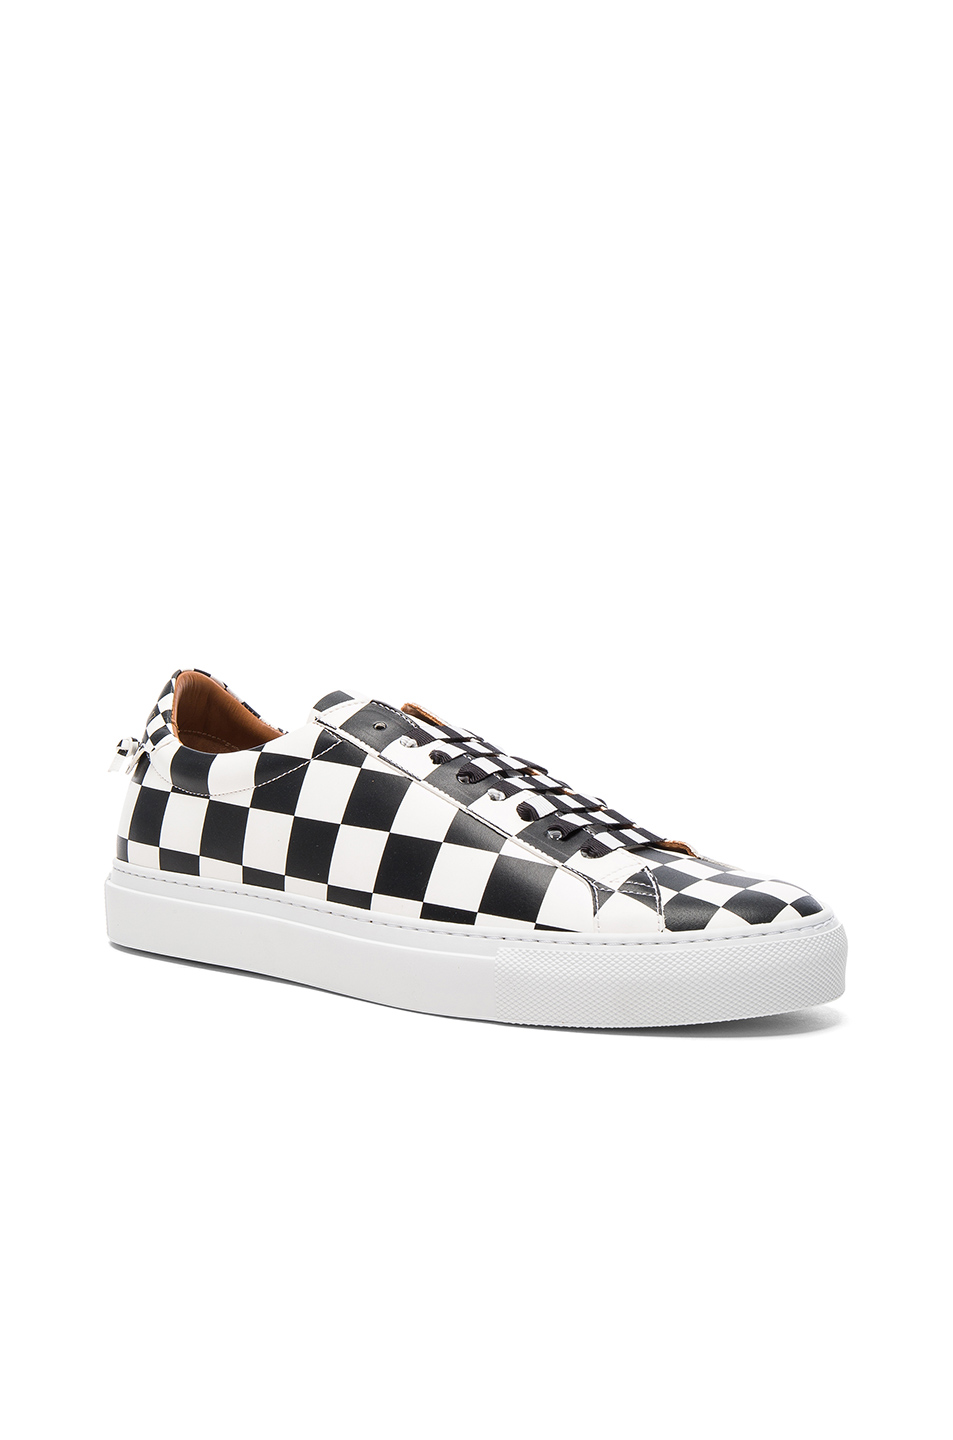 Givenchy Leather Urban Street Low Sneakers in Black,White,Checkered & Plaid